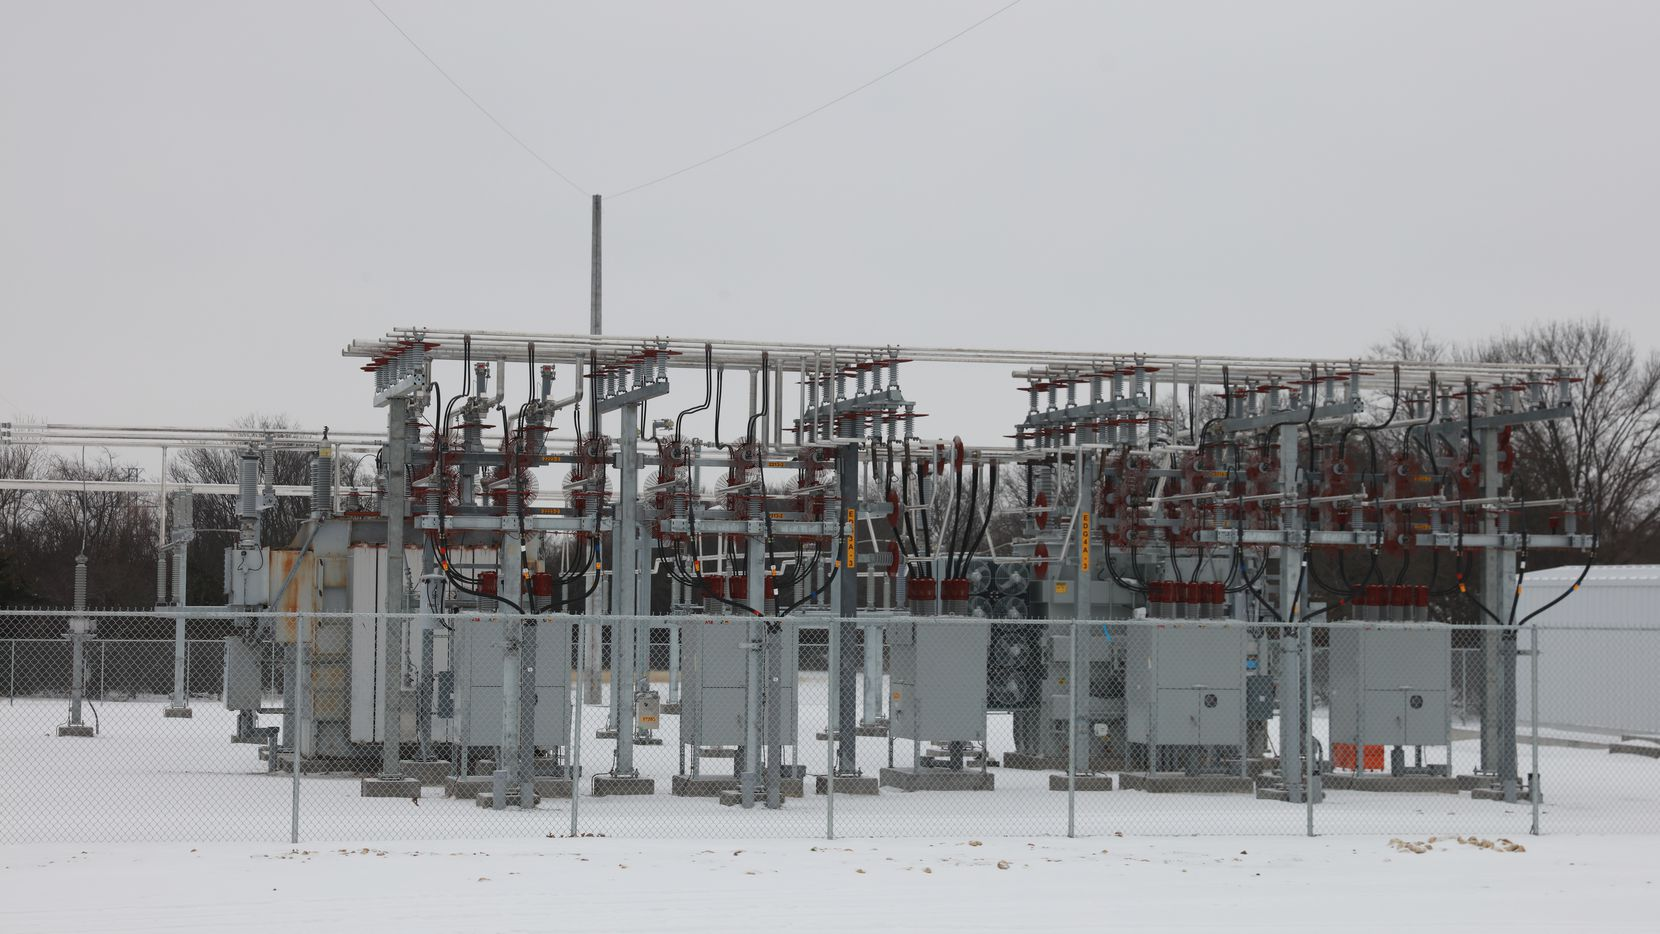 FORT WORTH, TX - FEBRAURY 17: A general view of Oncor electricity substation located at the corner of Altamesa Blvd. and Crowley Rd. on Feb. 17, 2021 in Fort Worth, Texas. (Photo Omar Vega / Al DIa)